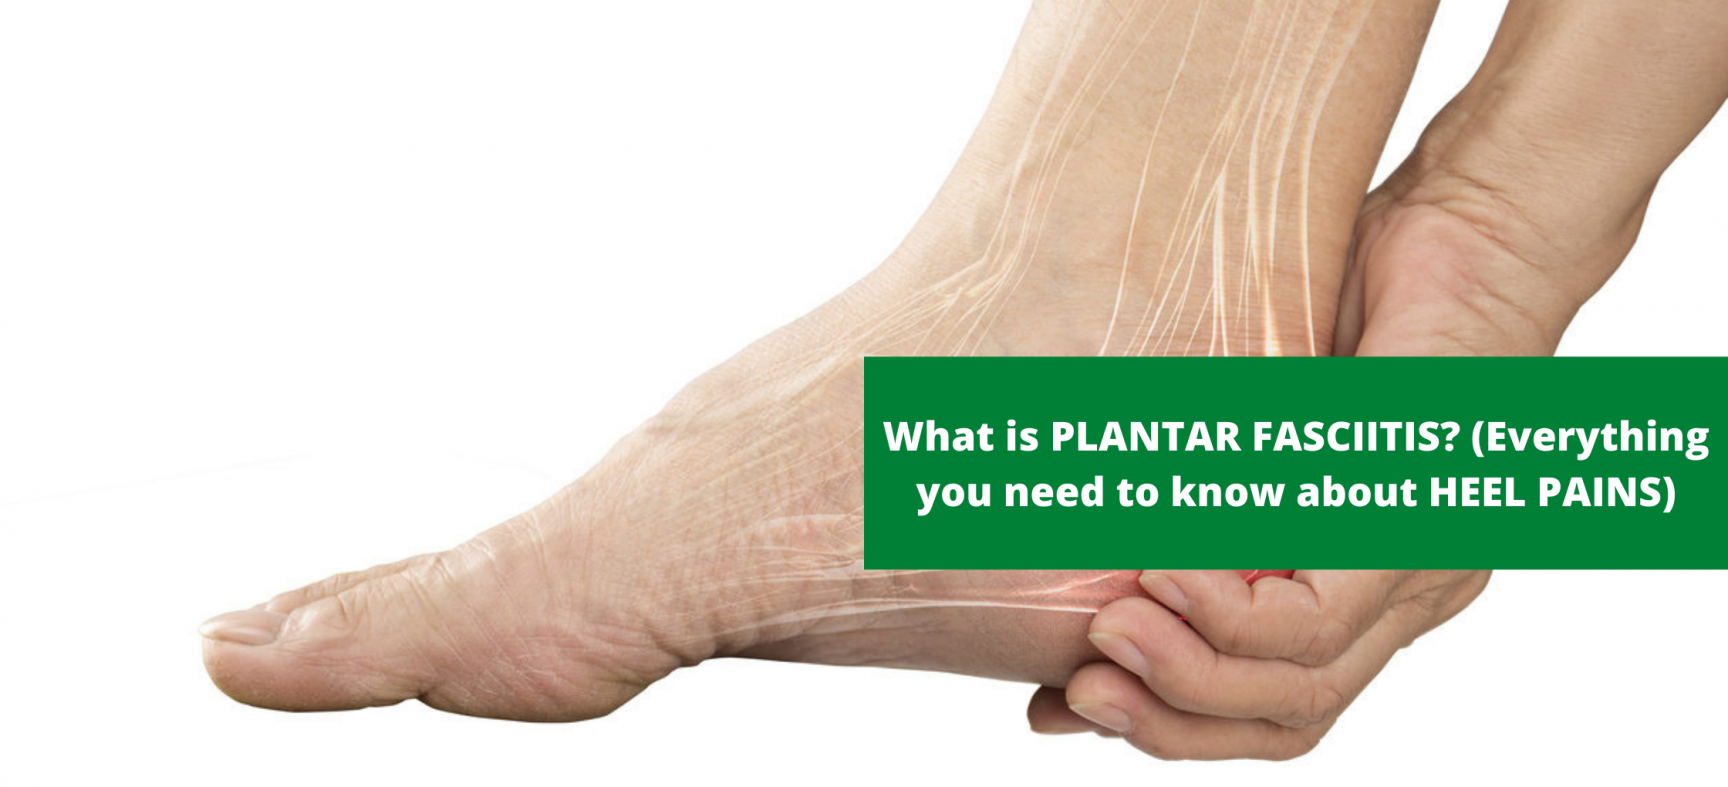 WHAT IS PLANTAR FASCIITIS? (EVERYTHING ABOUT HEEL PAINS)